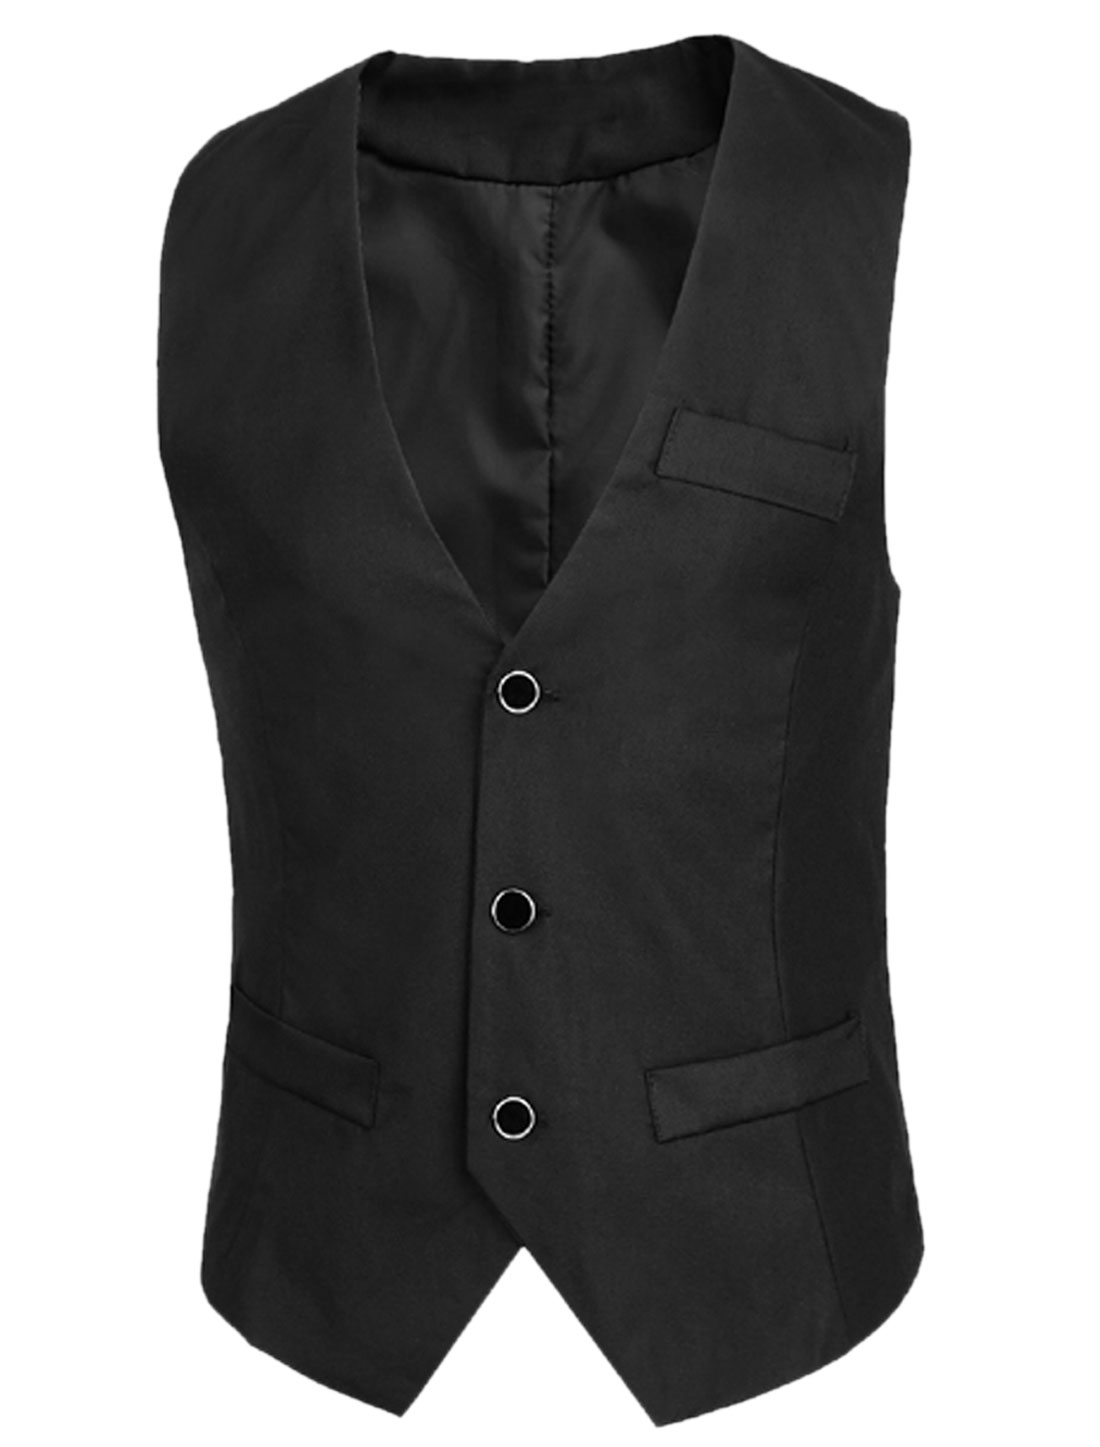 Deep V Neck Pockets Decor New Style Vest for Men Black M